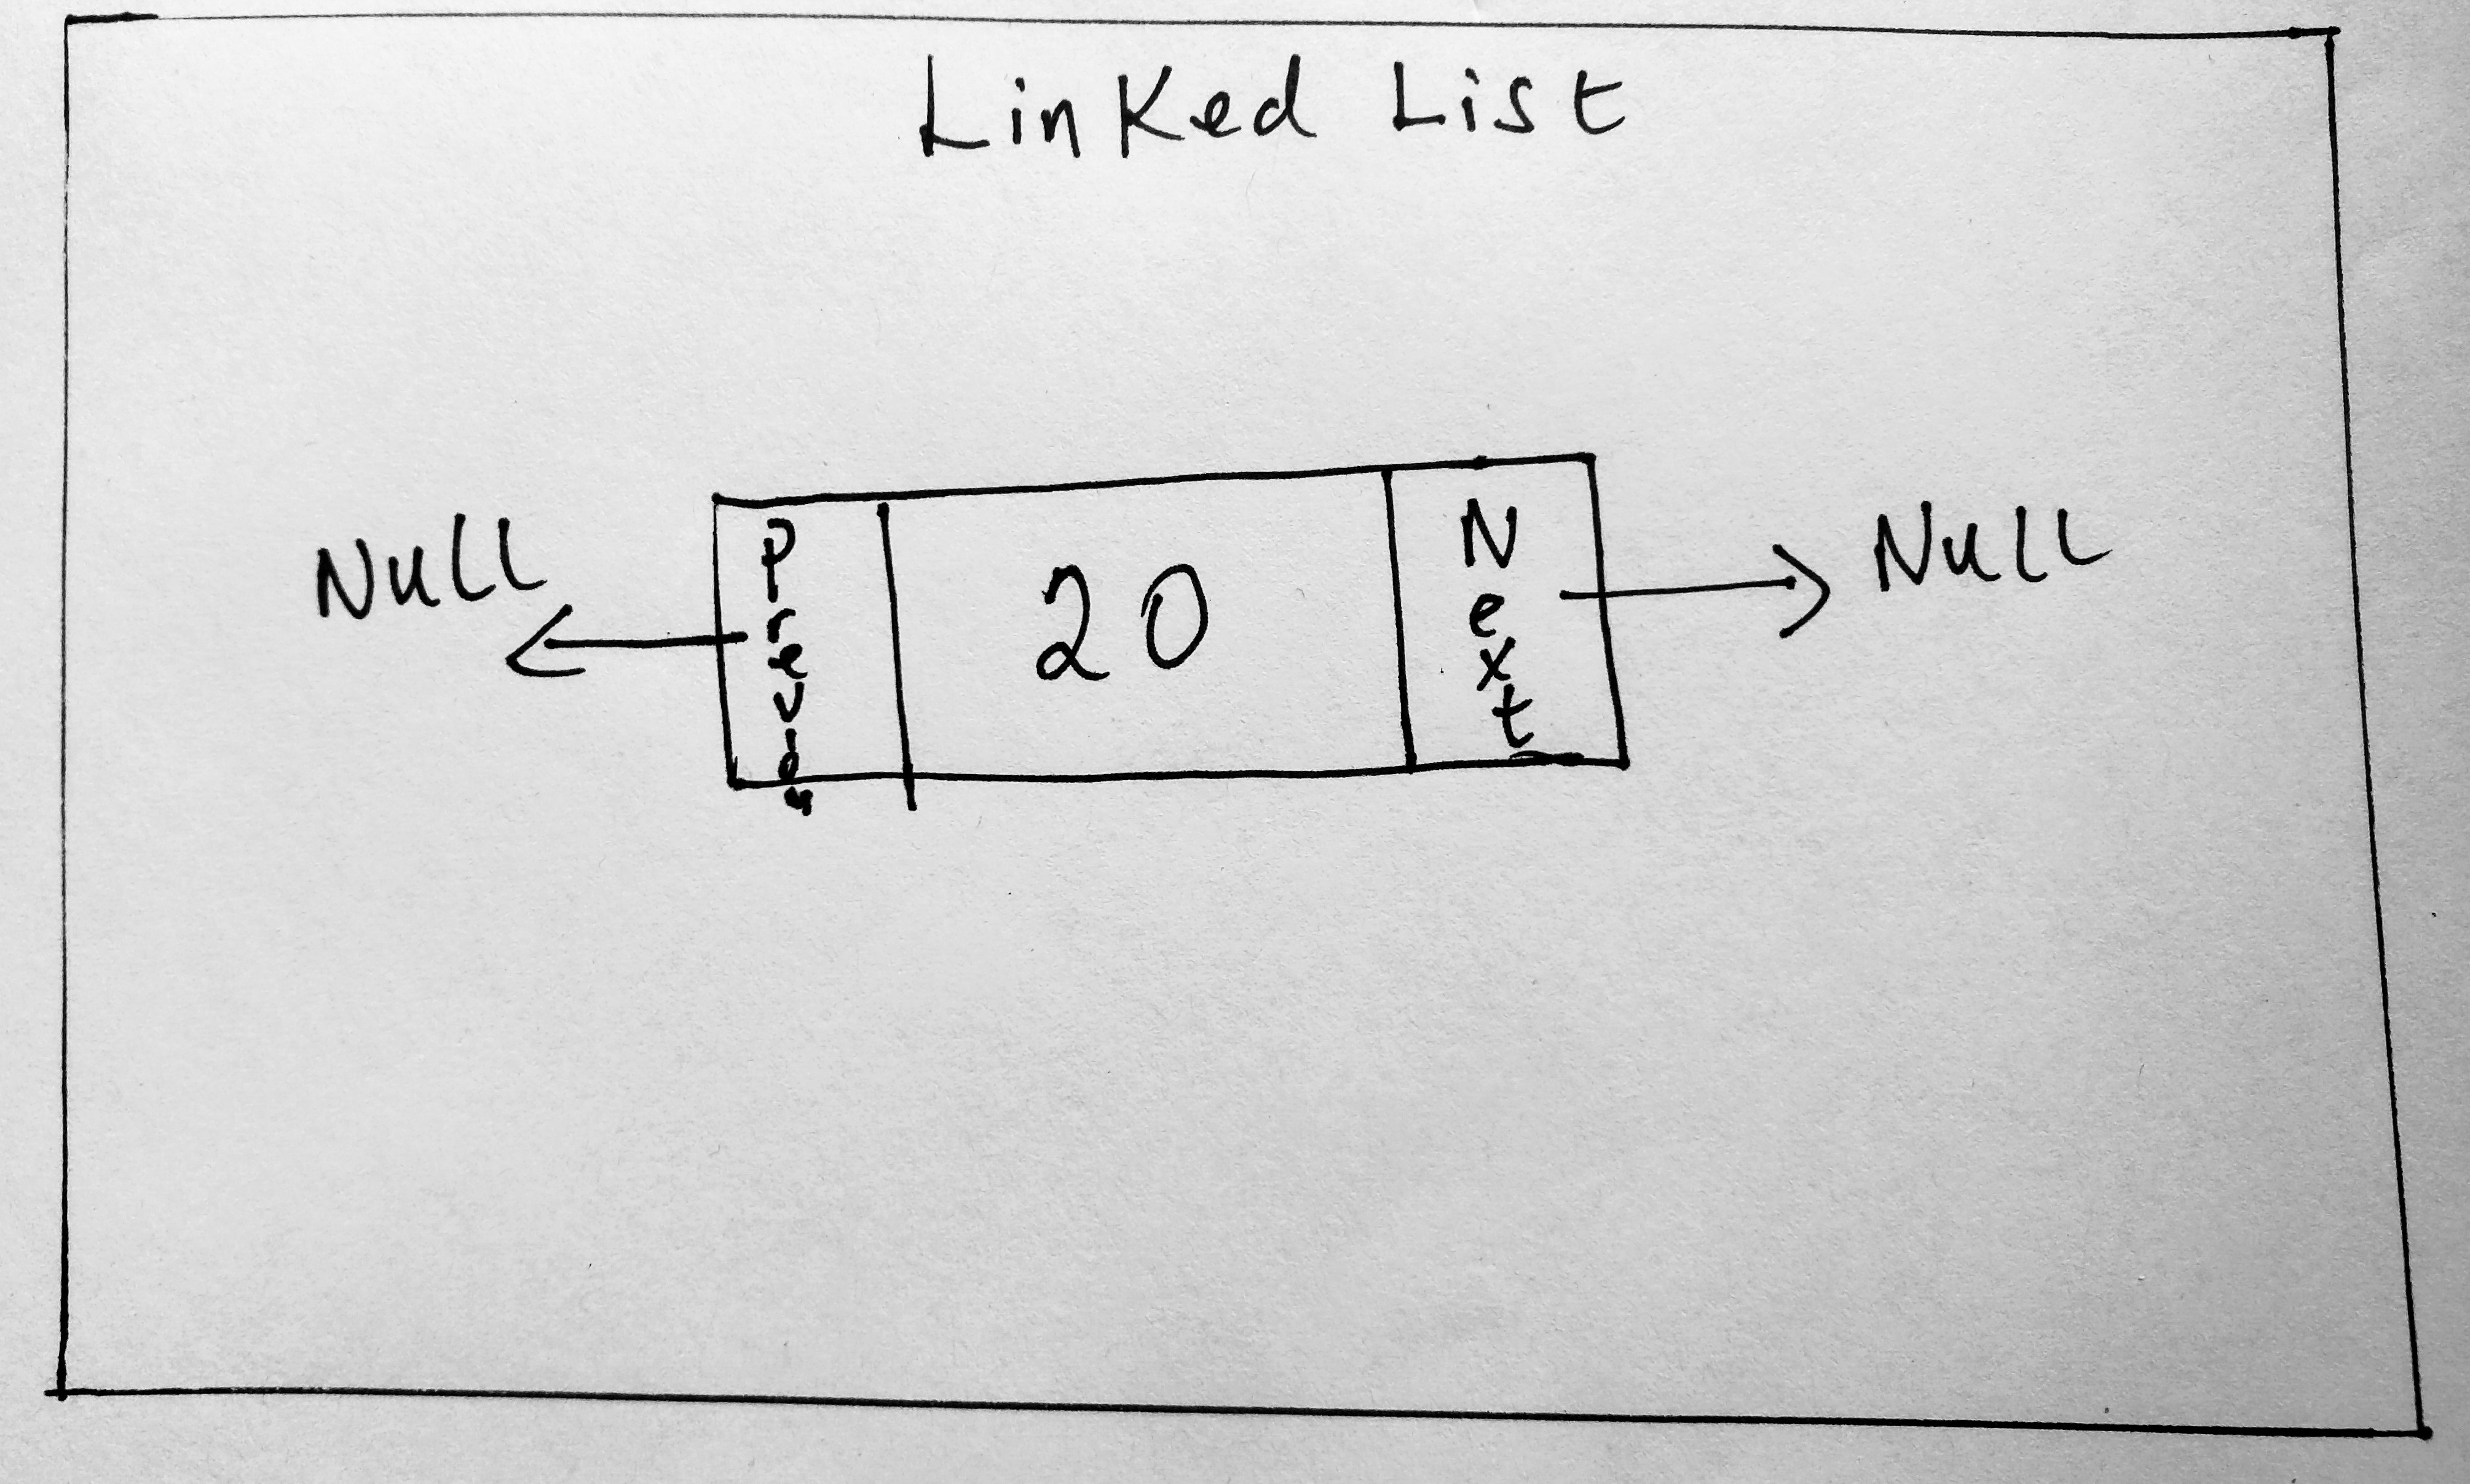 double linked list node